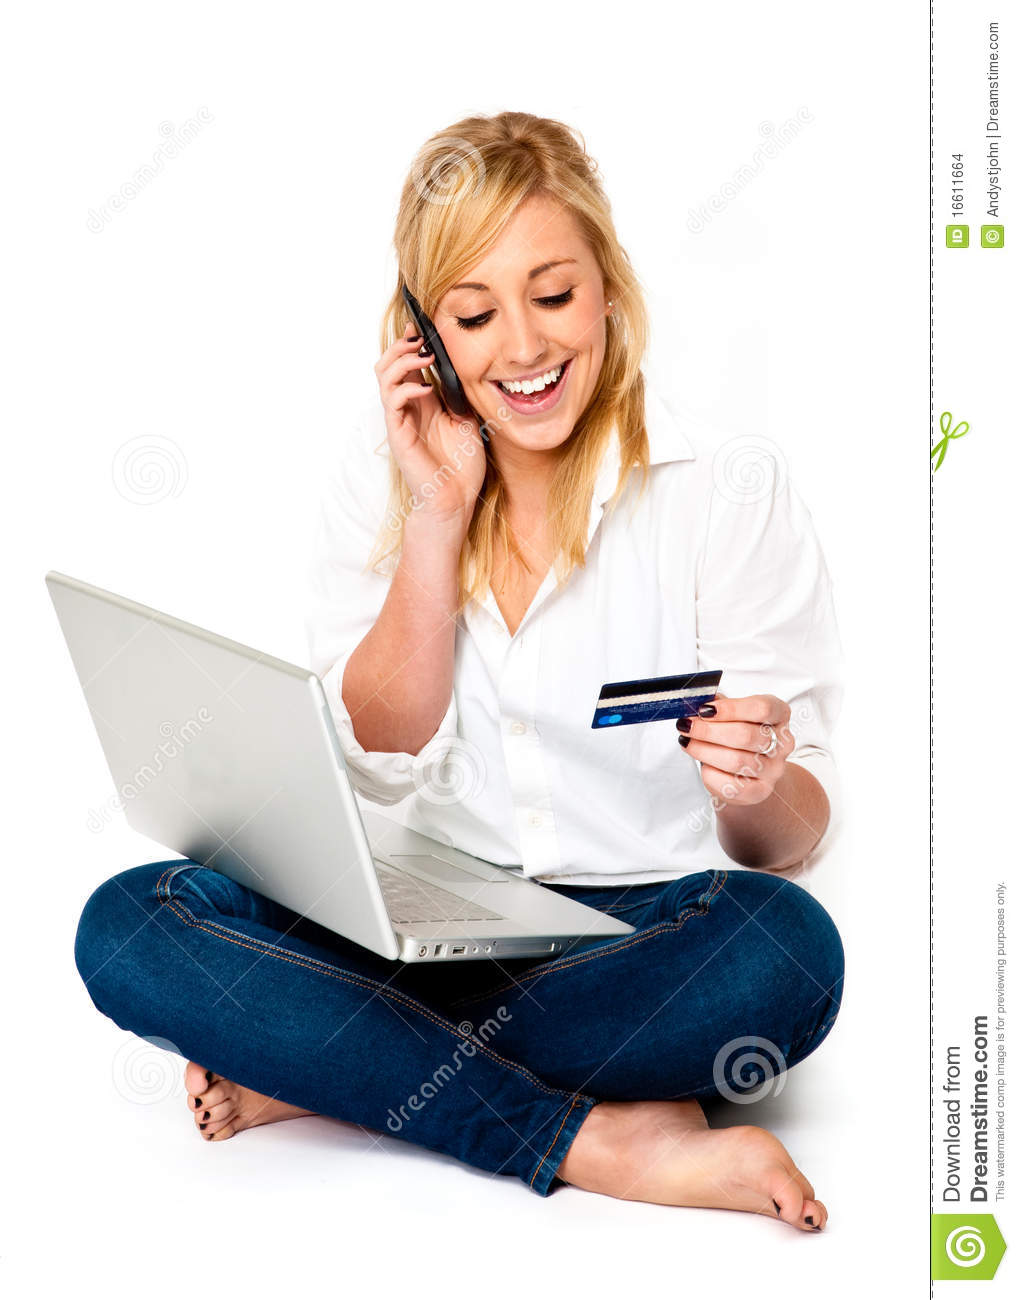 Young Woman Online Shopping Stock Images - Image: 16611664